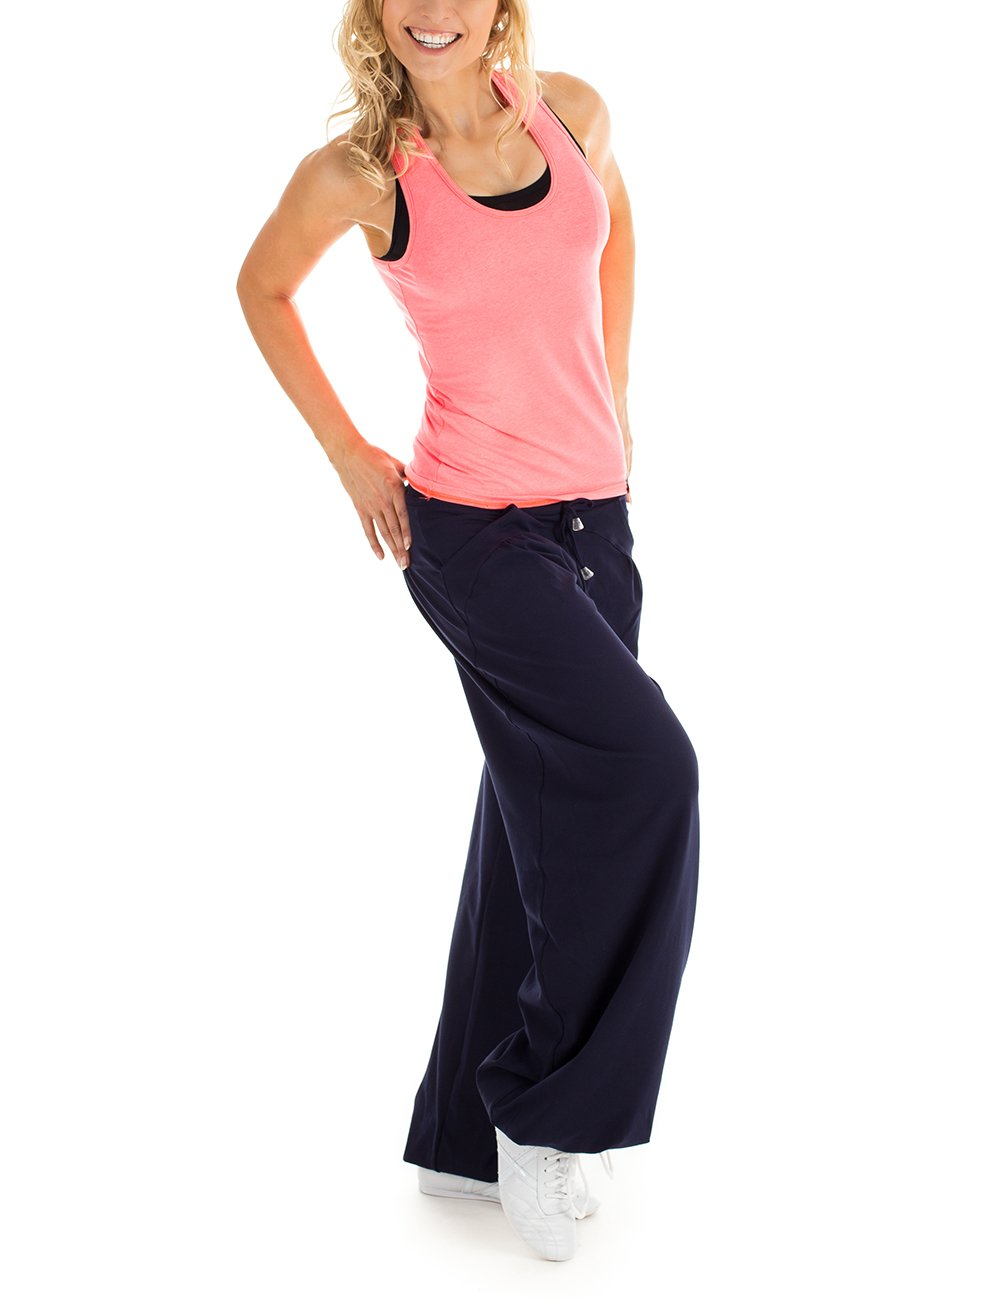 Winshape Damen Dance Fitness Freizeit Sport Trainingshose WTE3